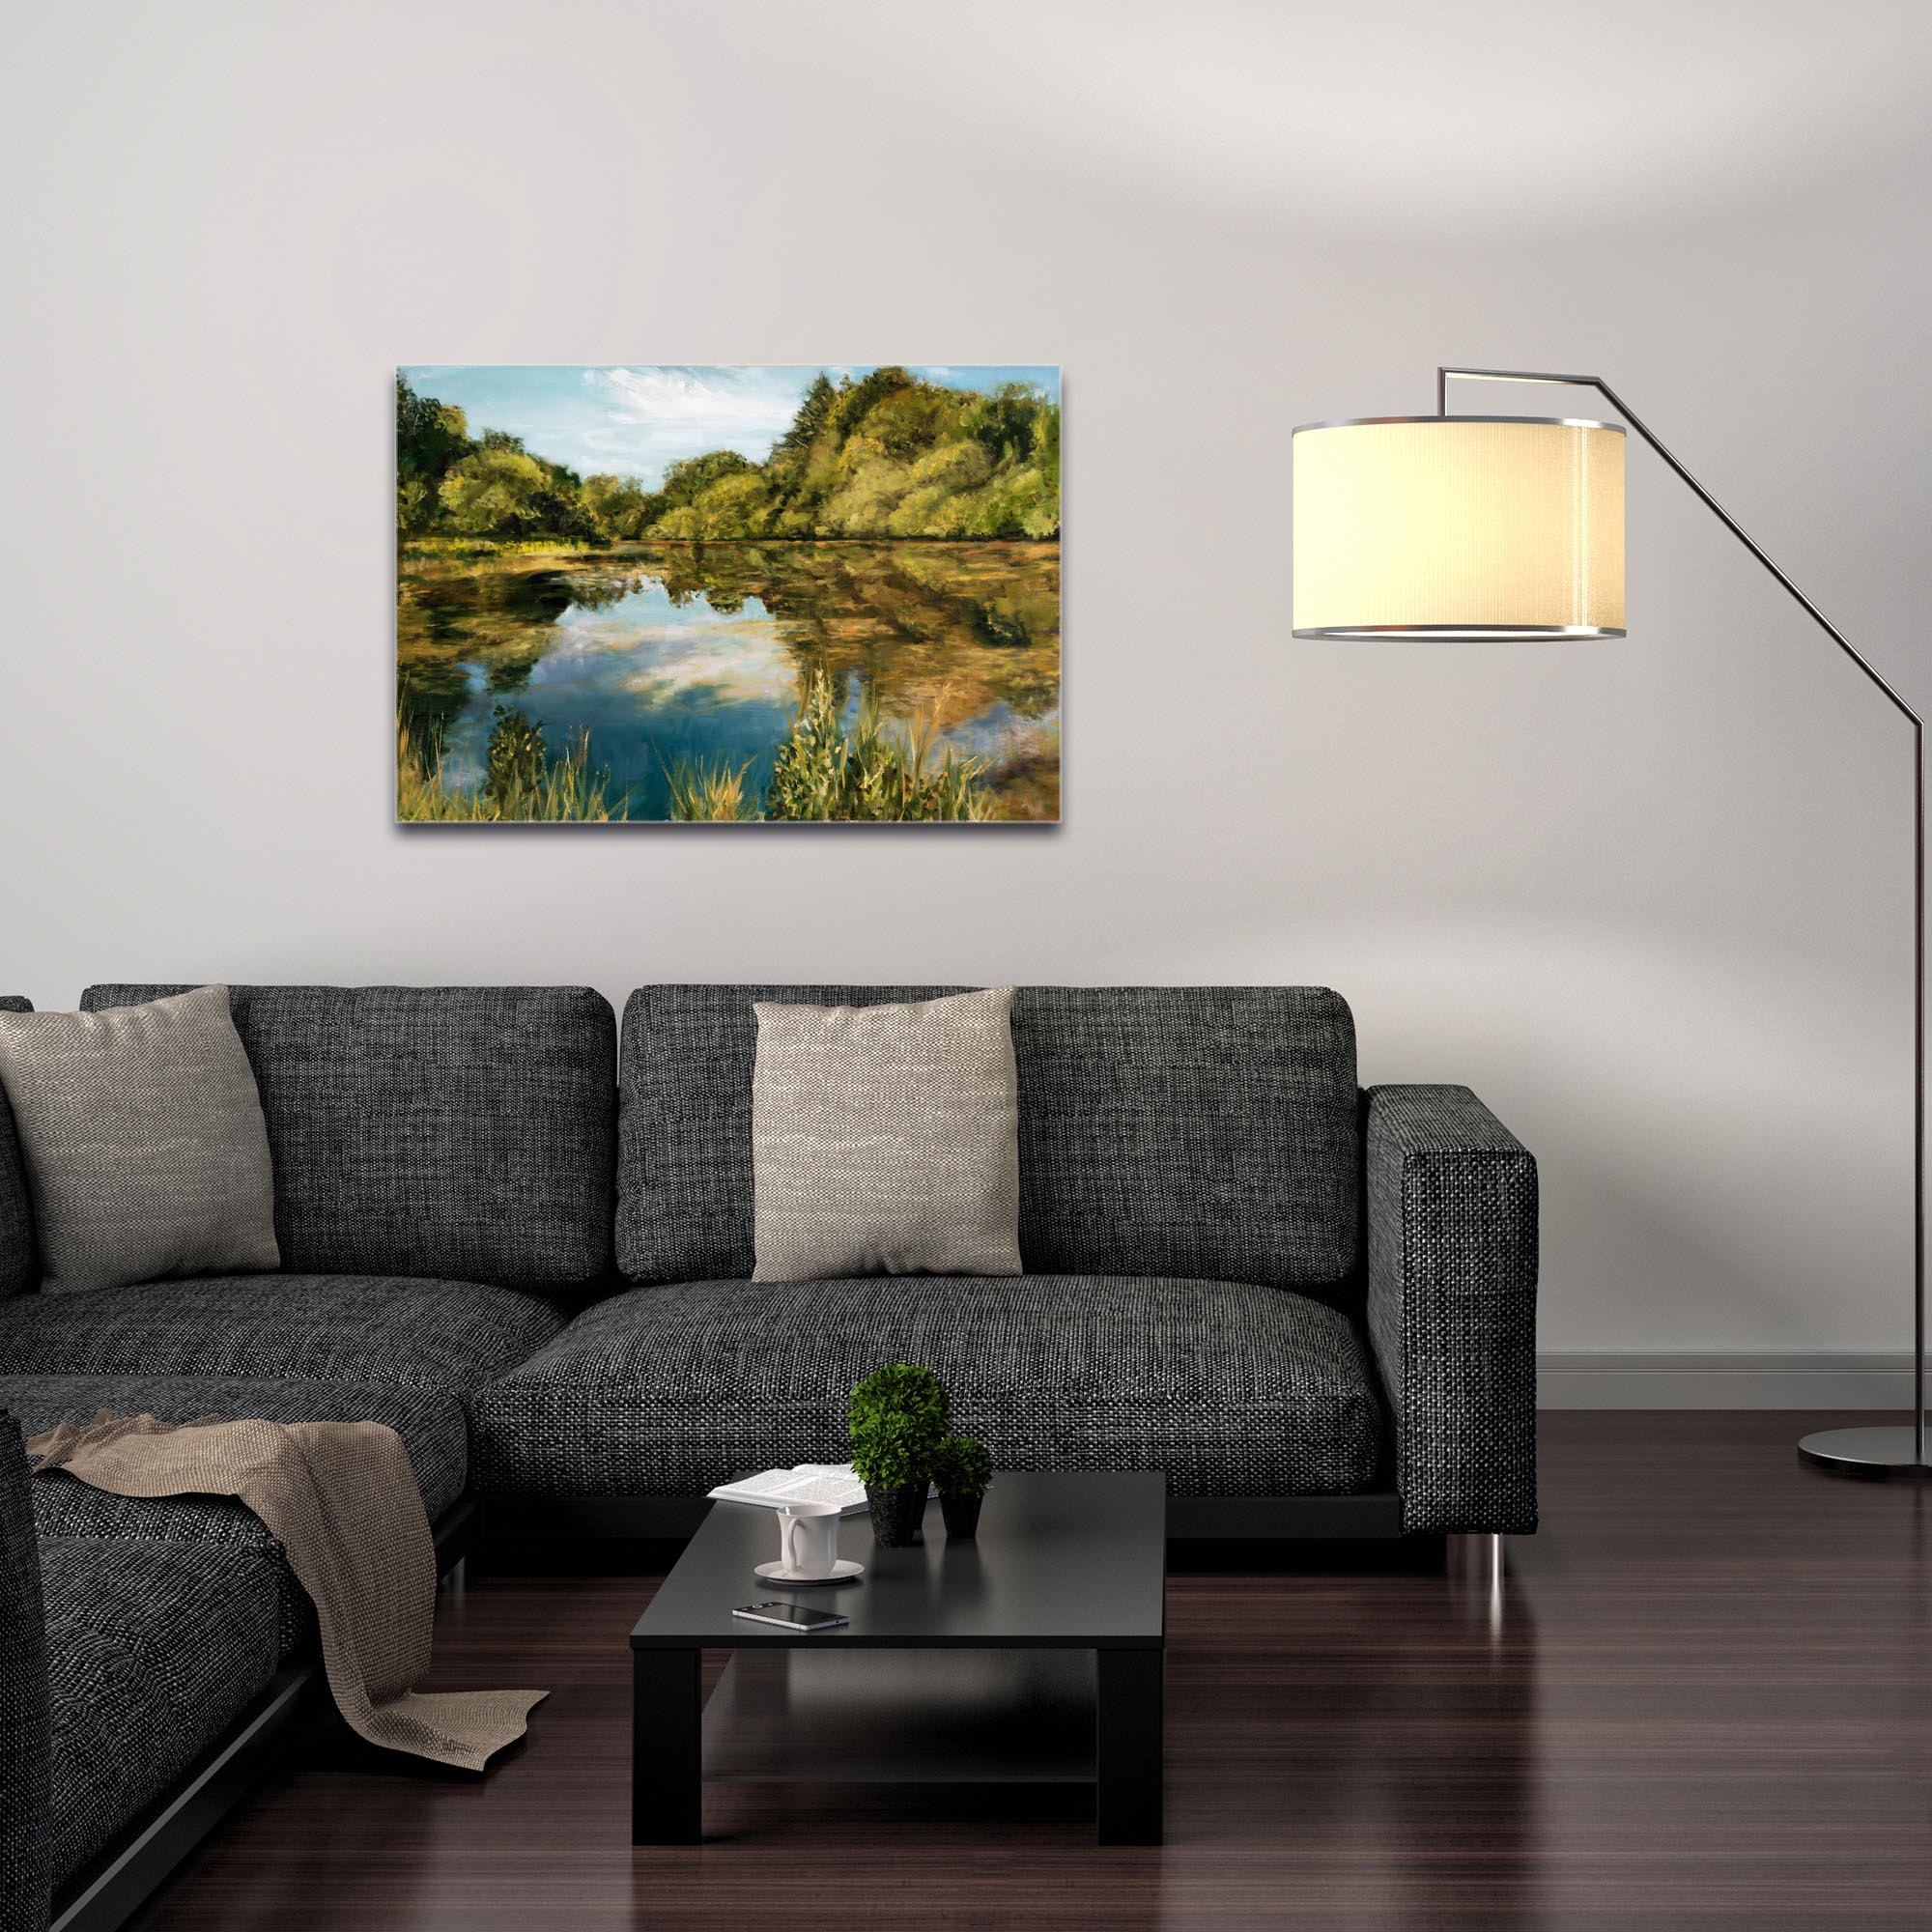 Traditional Wall Art 'Lake' - River Landscape Decor on Metal or Plexiglass - Image 3